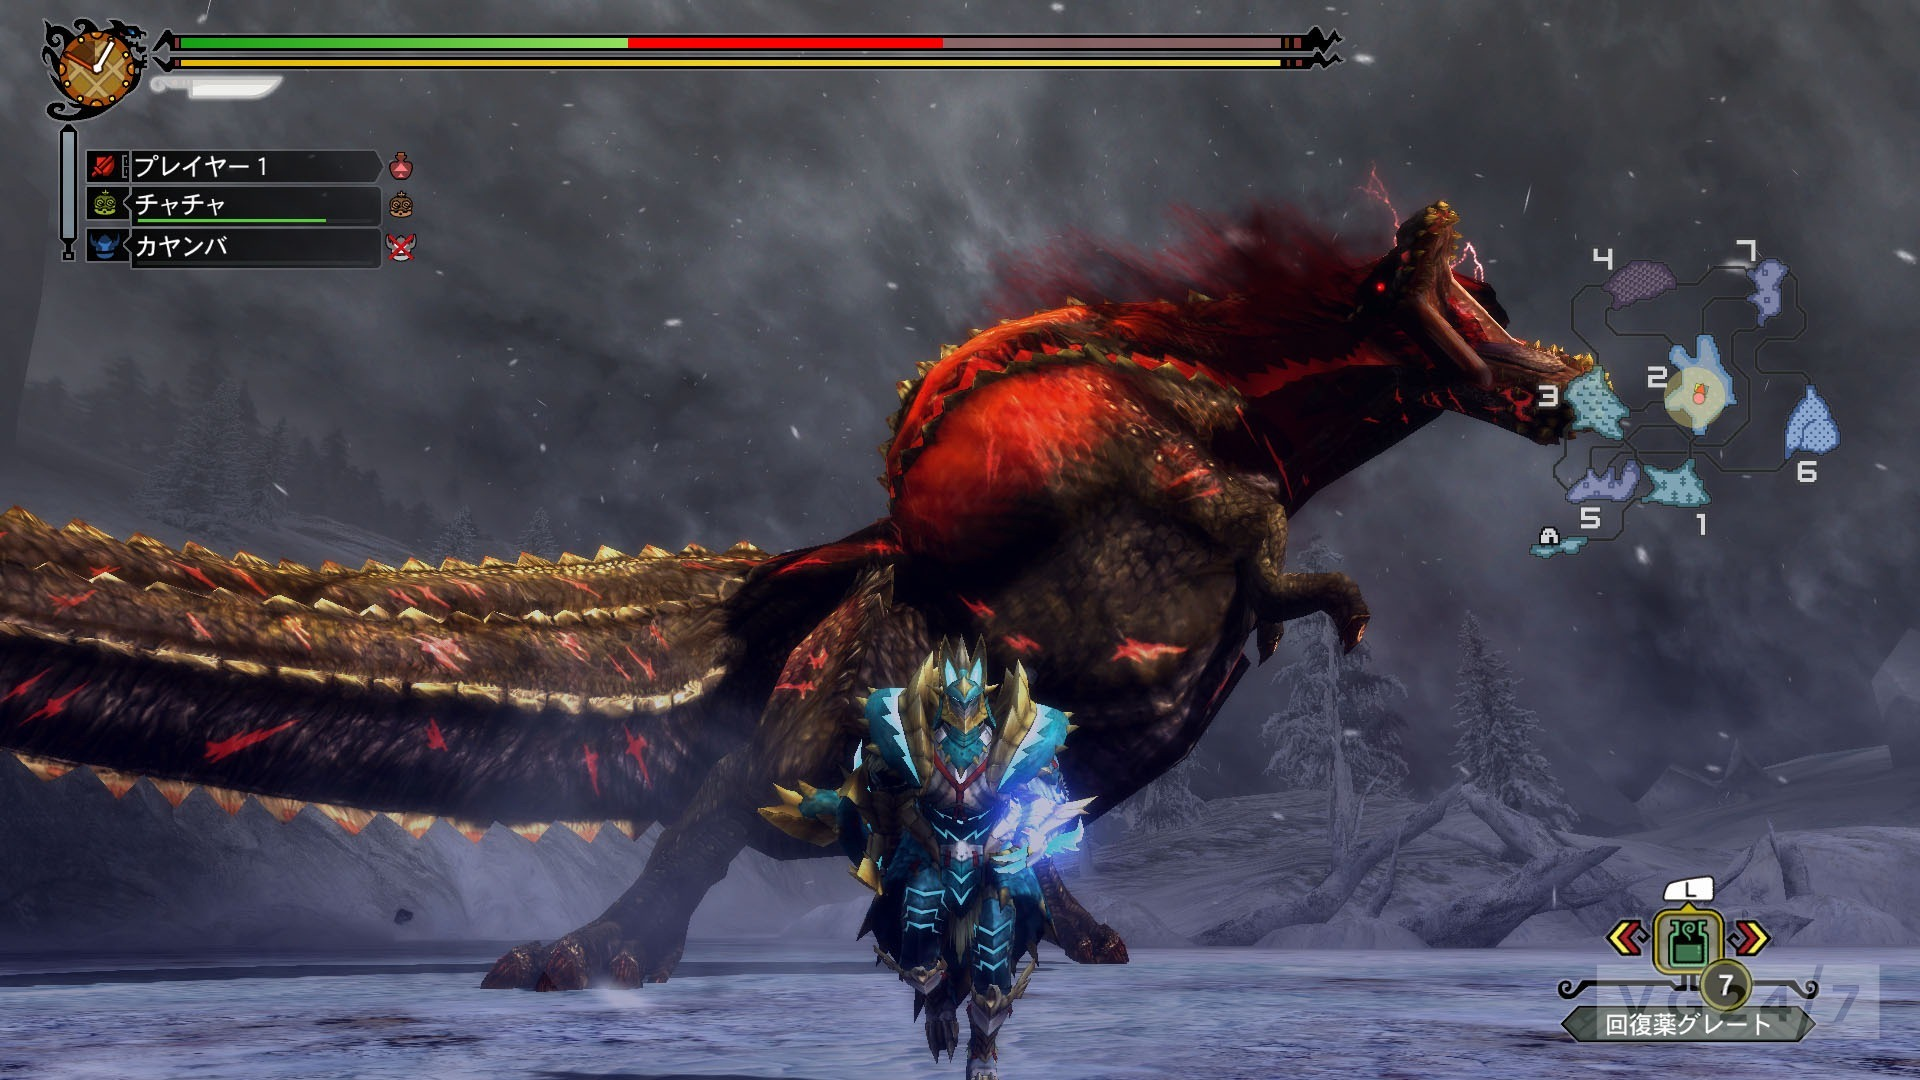 Monster Hunter 3 Ultimate Screens Compare 3DS, Wii U